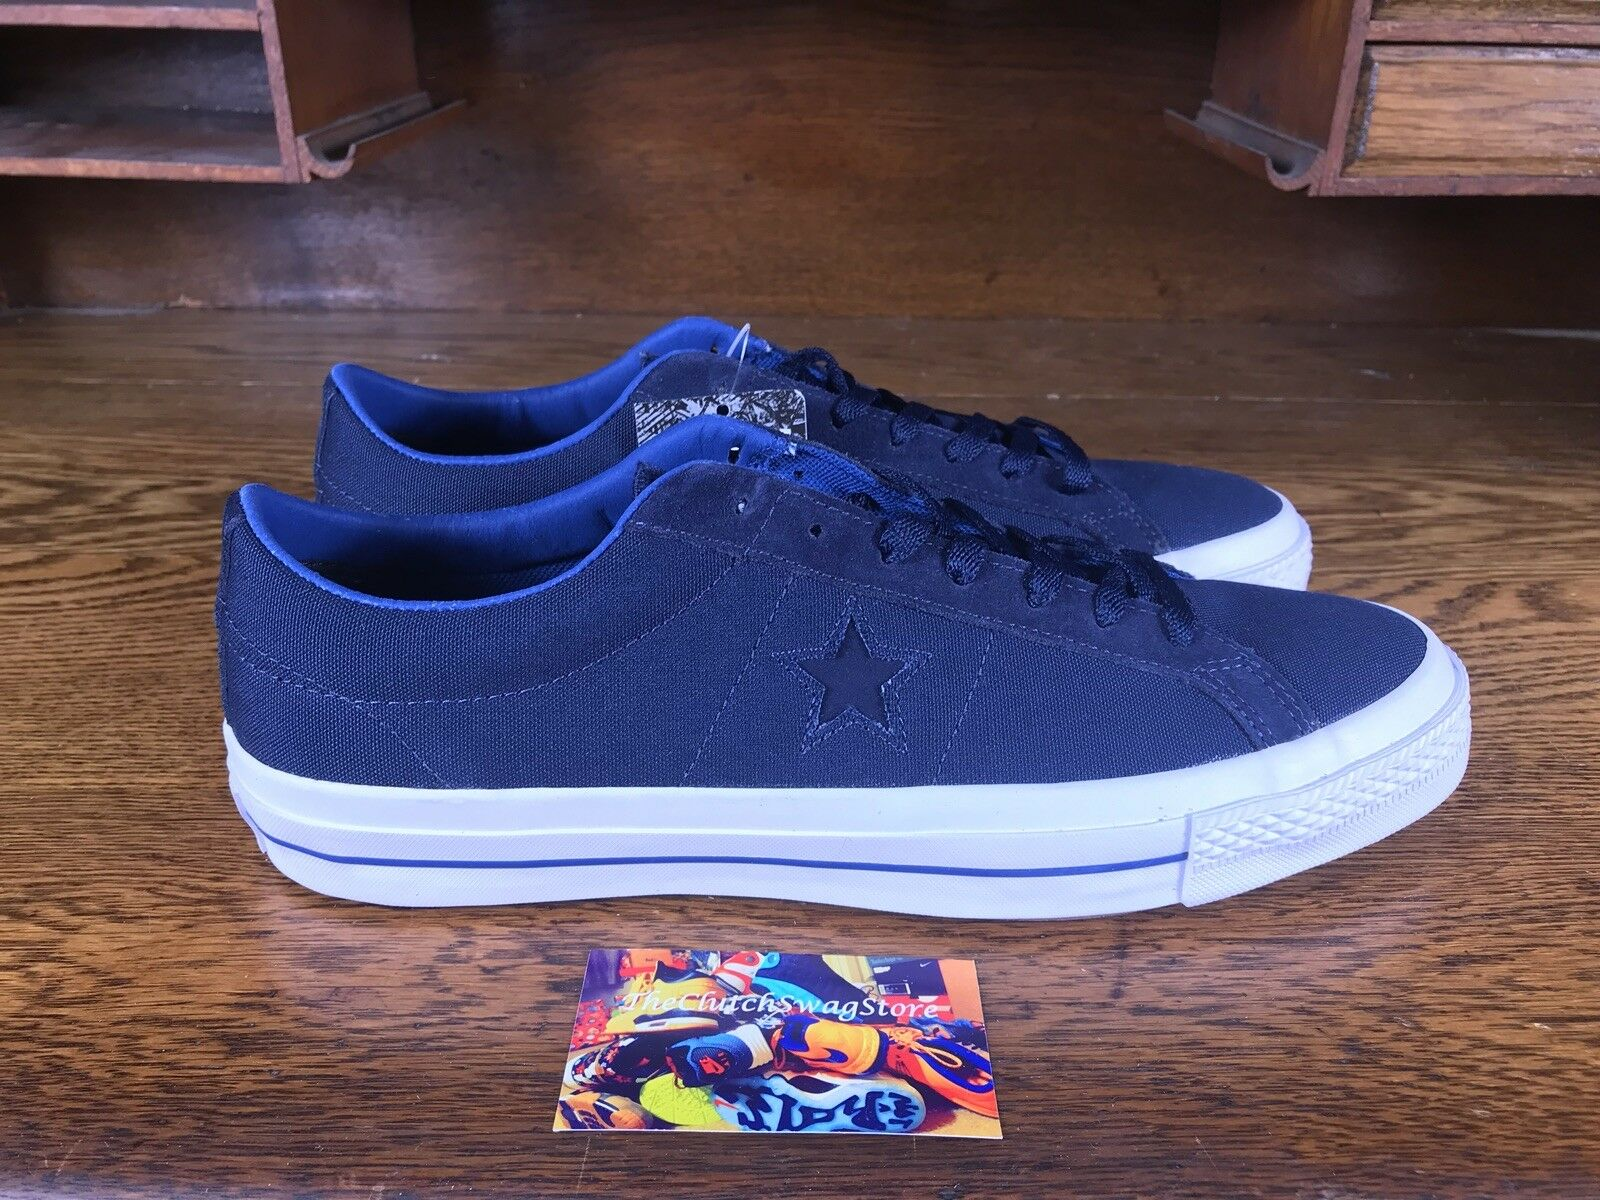 Converse One Star hommes Low Top Casual Navy/blanc Chaussures 153708C Sz 12 w Lunarlon